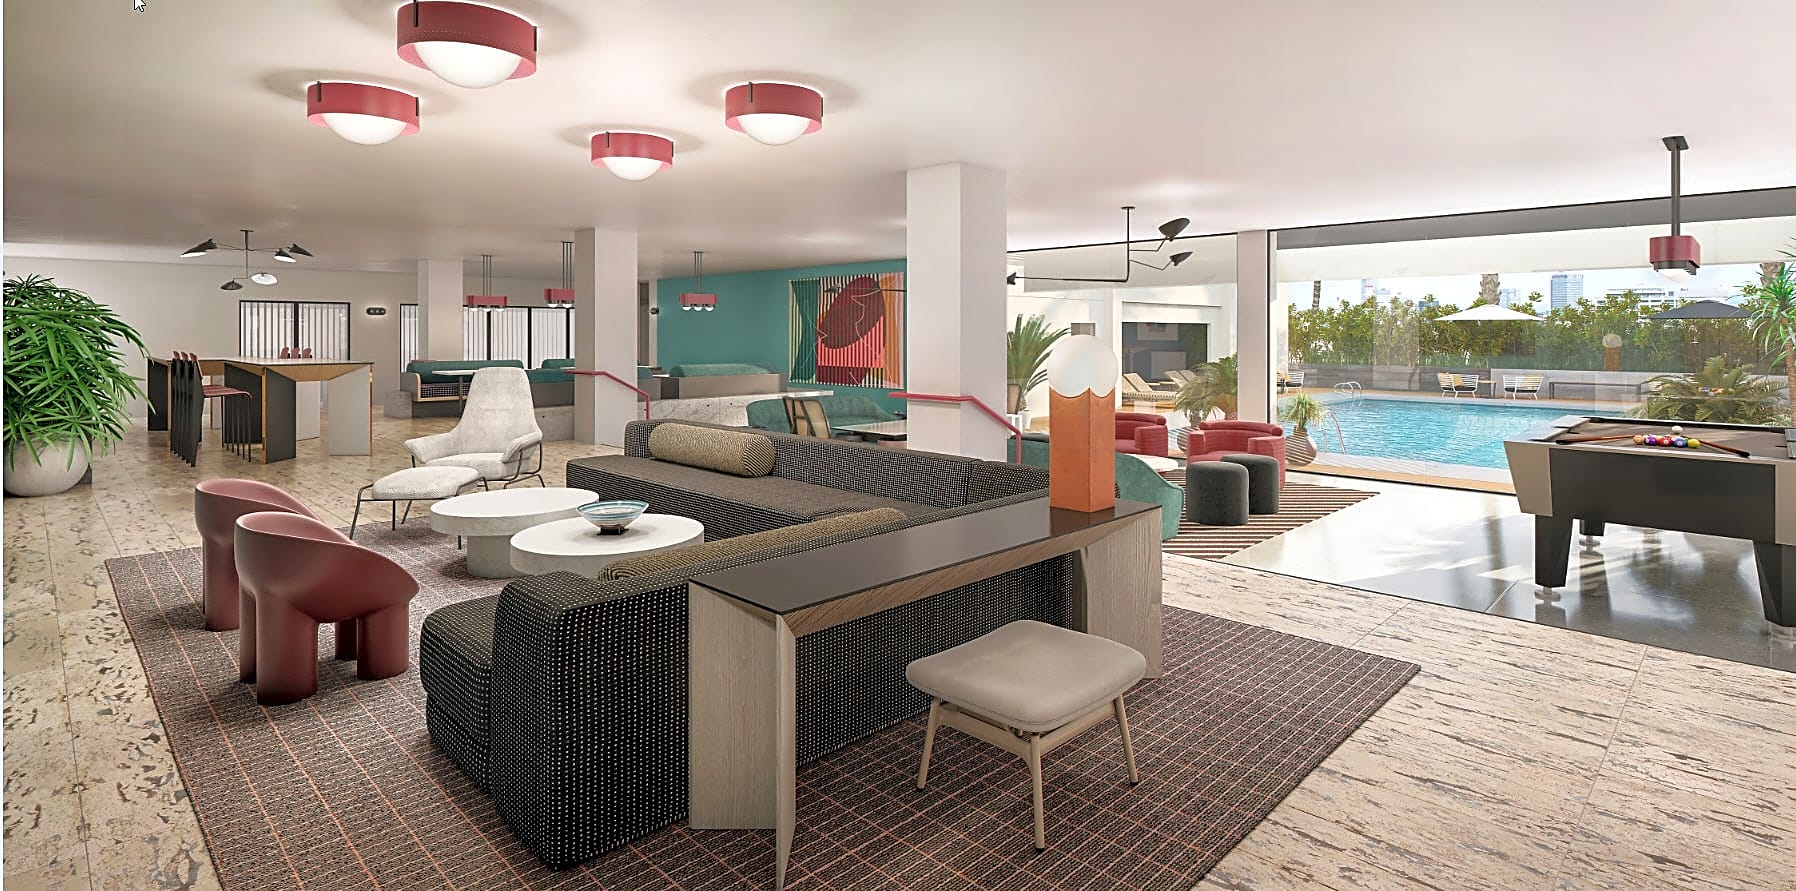 Newly Designed Resident Lounge Overlooking Pool Coming in 2019!   *Rendering may not reflect final installation.